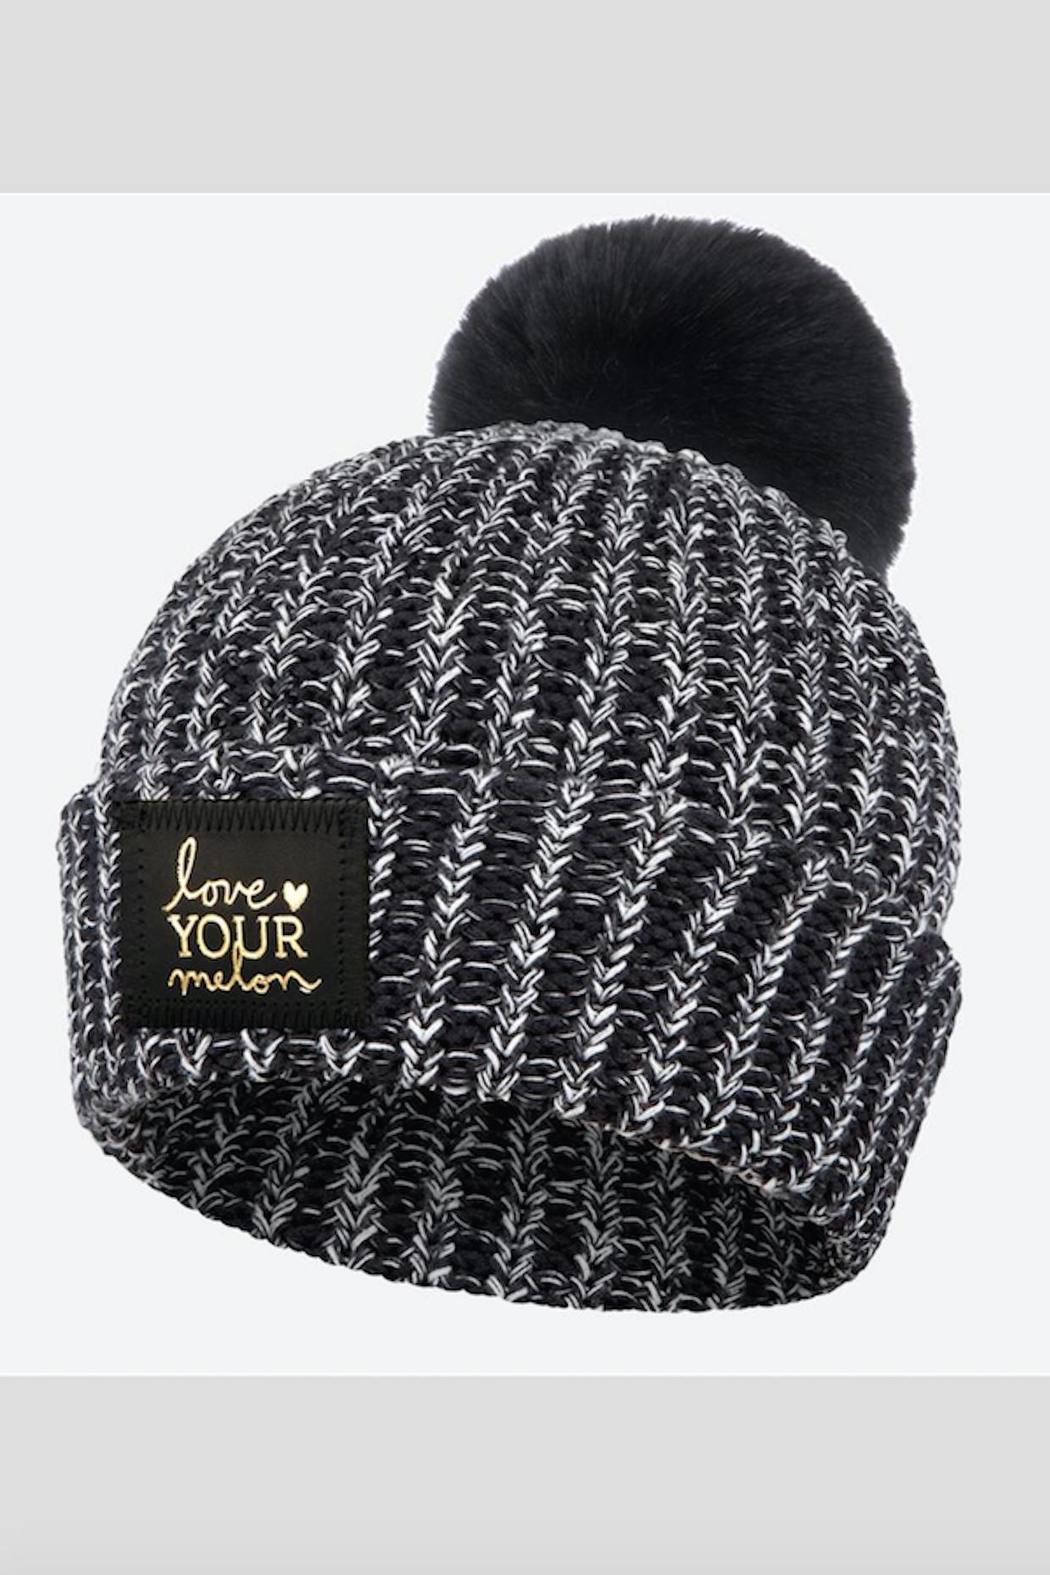 ffc4995e19c Love Your Melon Black White Speckled Pom from New Jersey by Barefoot ...